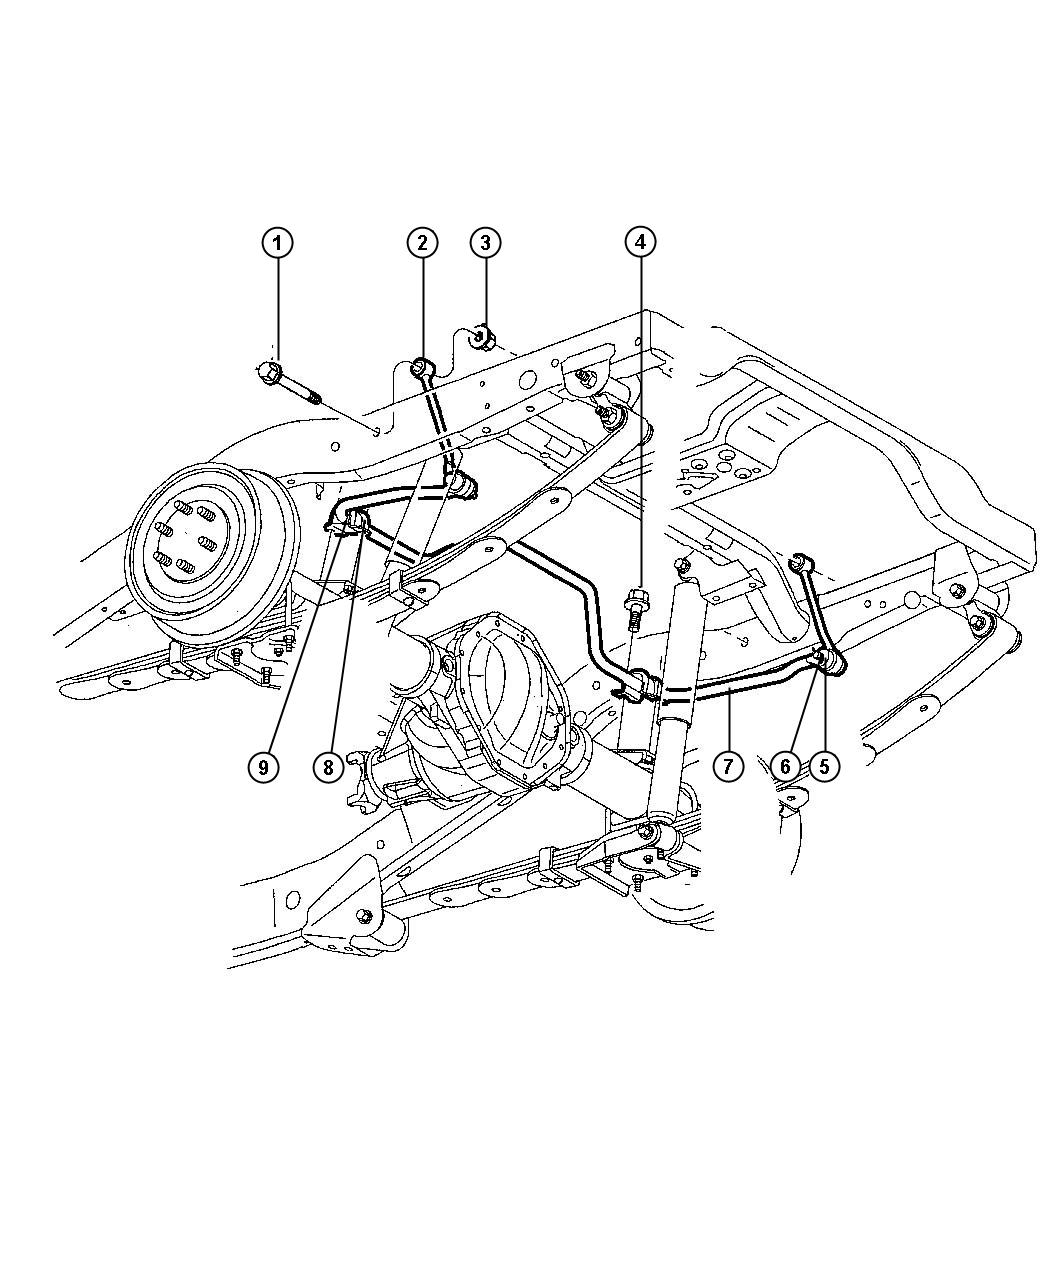 1978 Camaro Front Suspension Schematic. Diagrams. Wiring